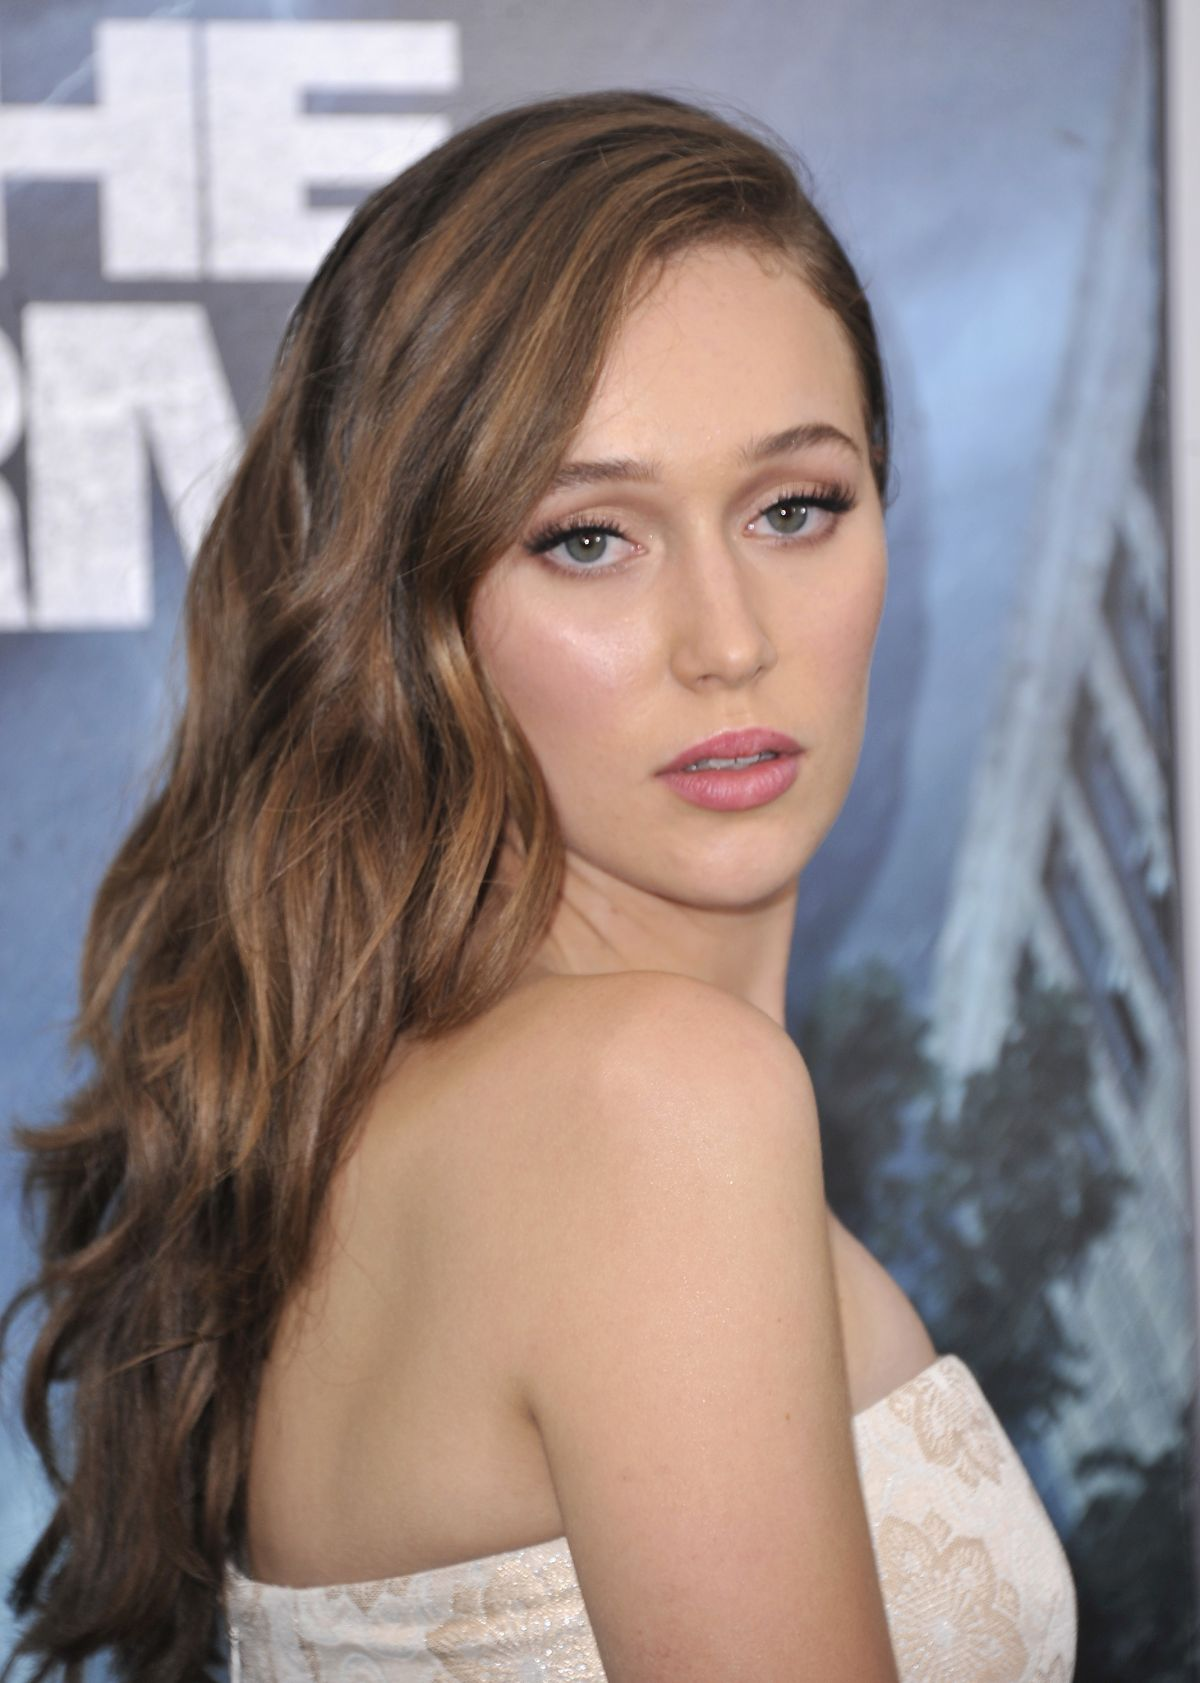 ALYCIA DEBNAM-CAREY at Into the Storm Premiere in New York